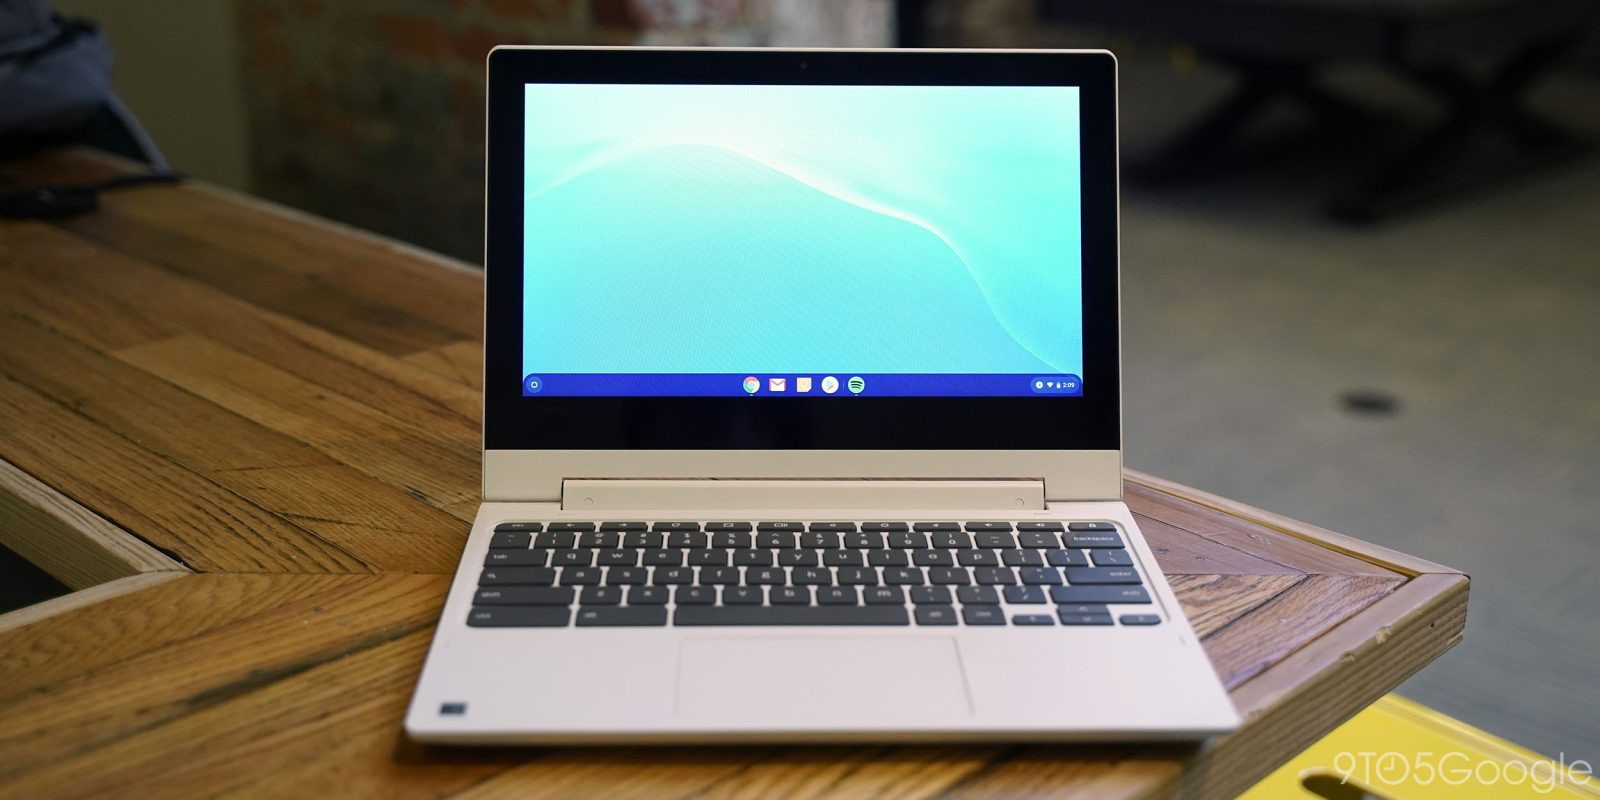 Check out the Chrome OS 'Release Notes' web app [Gallery